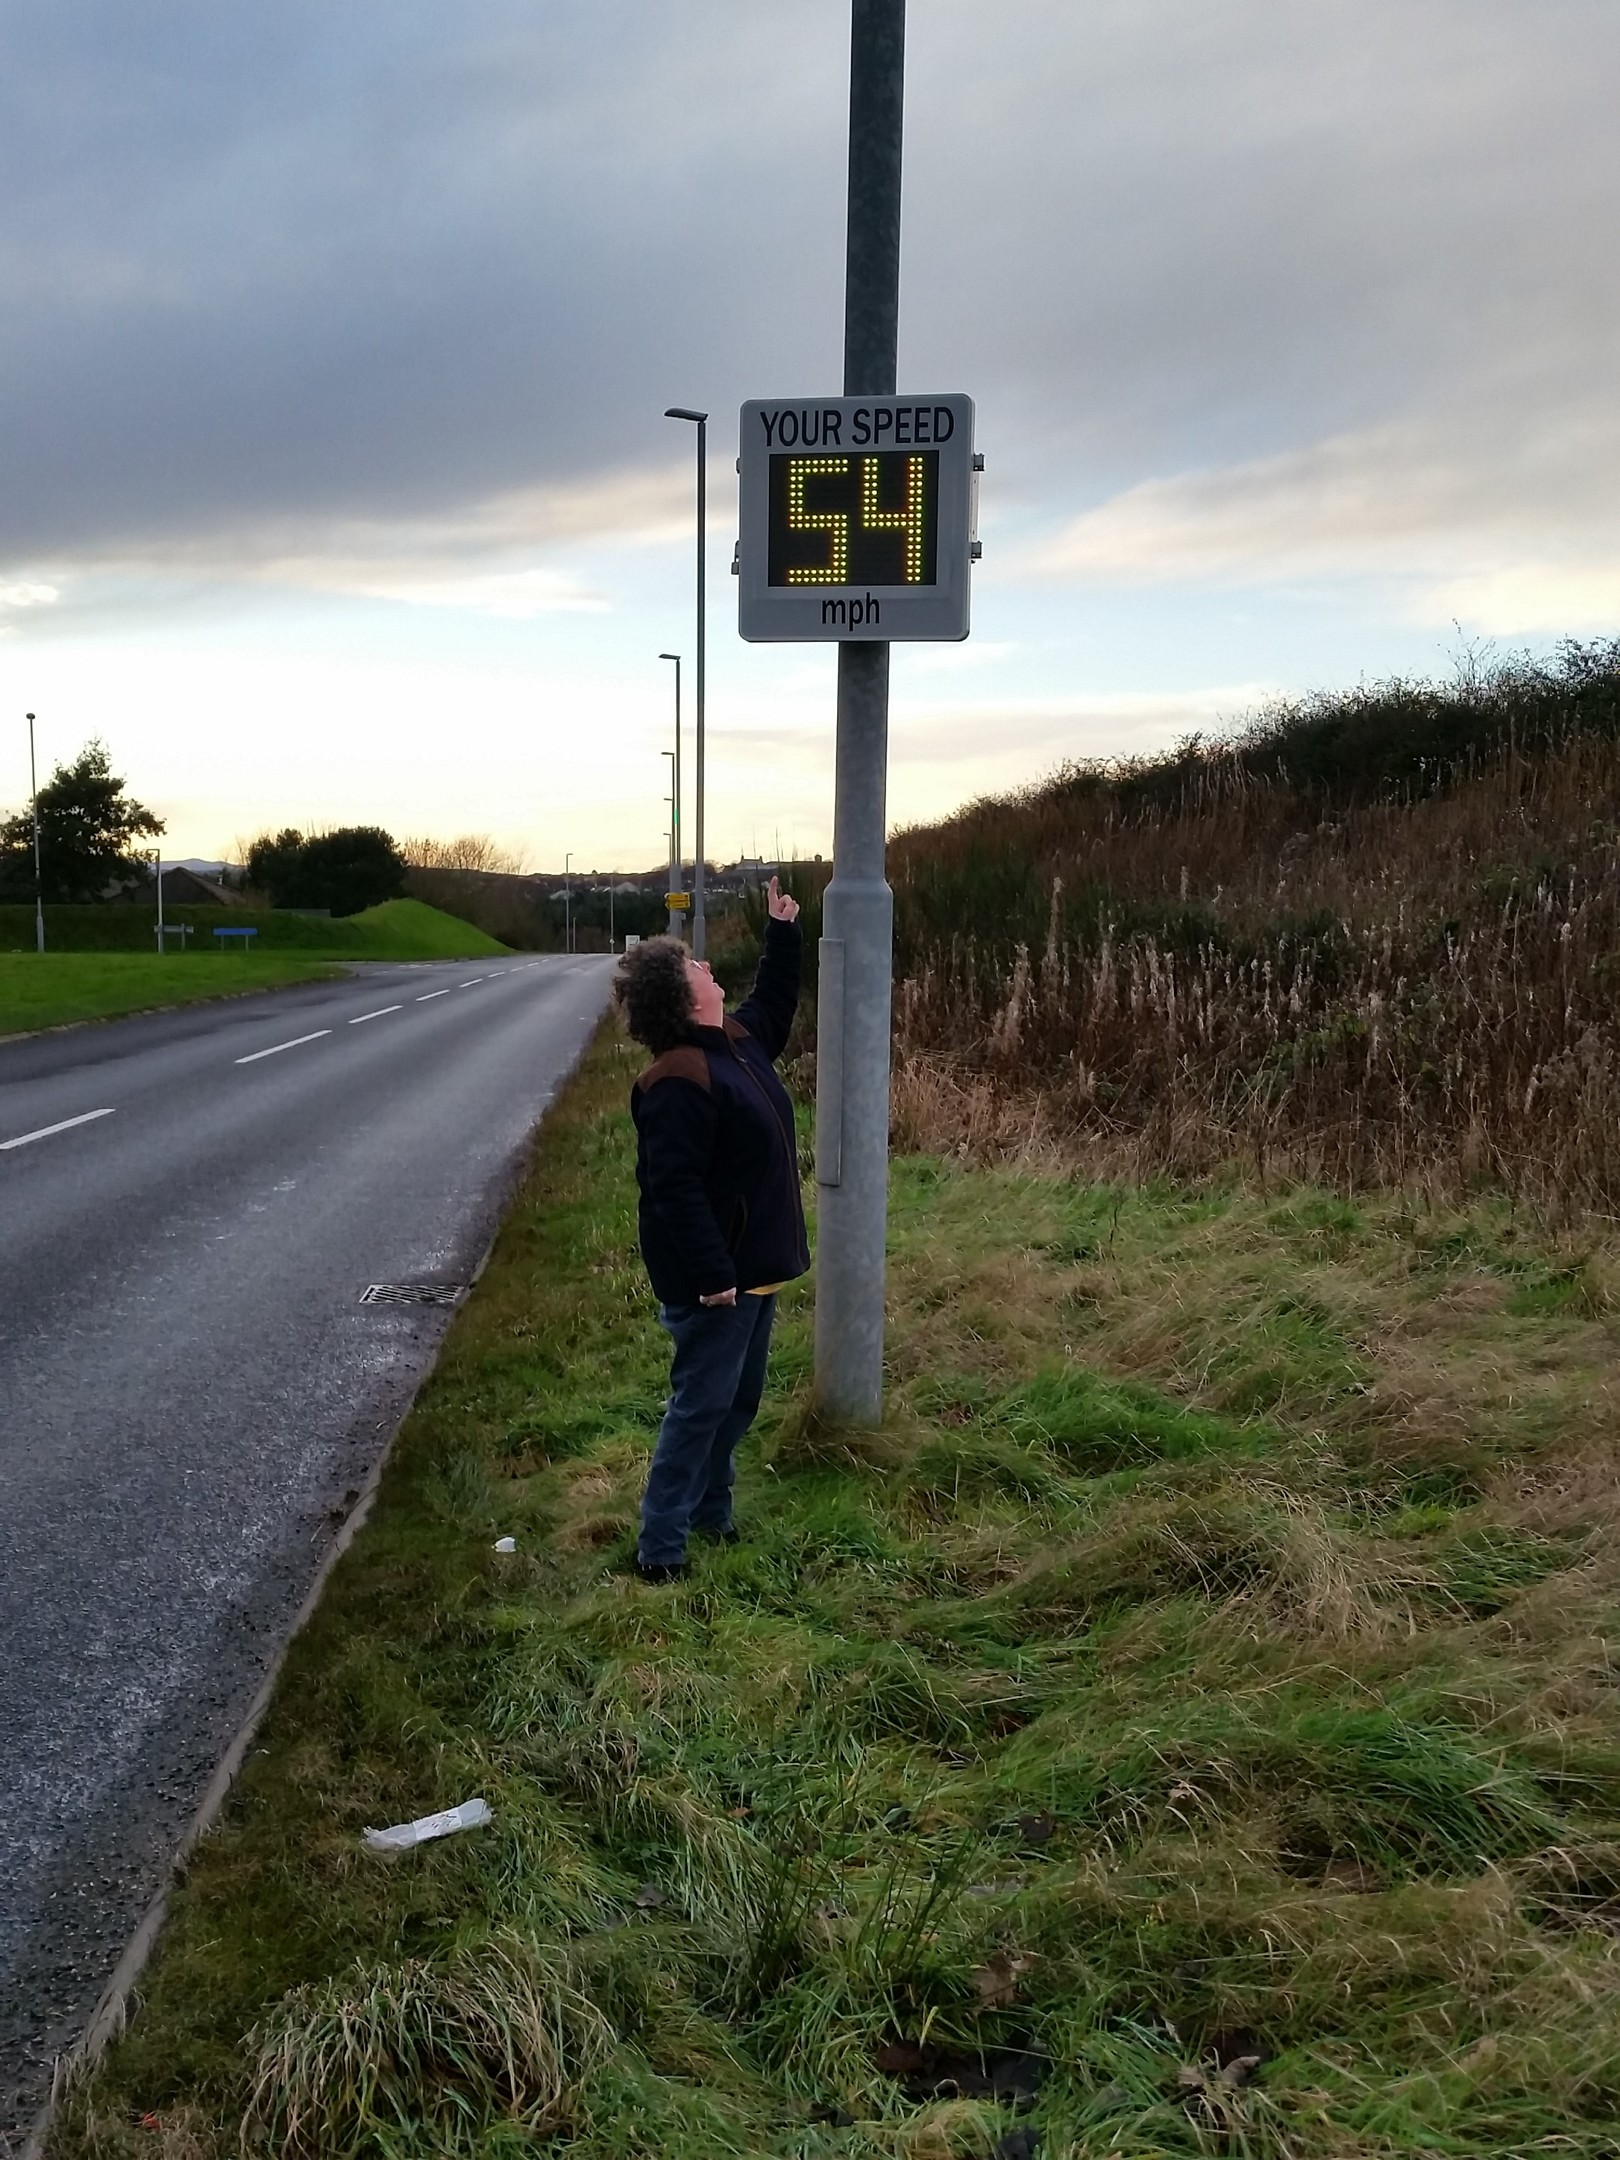 Gillian Owen is calling for re-think on the speed limit